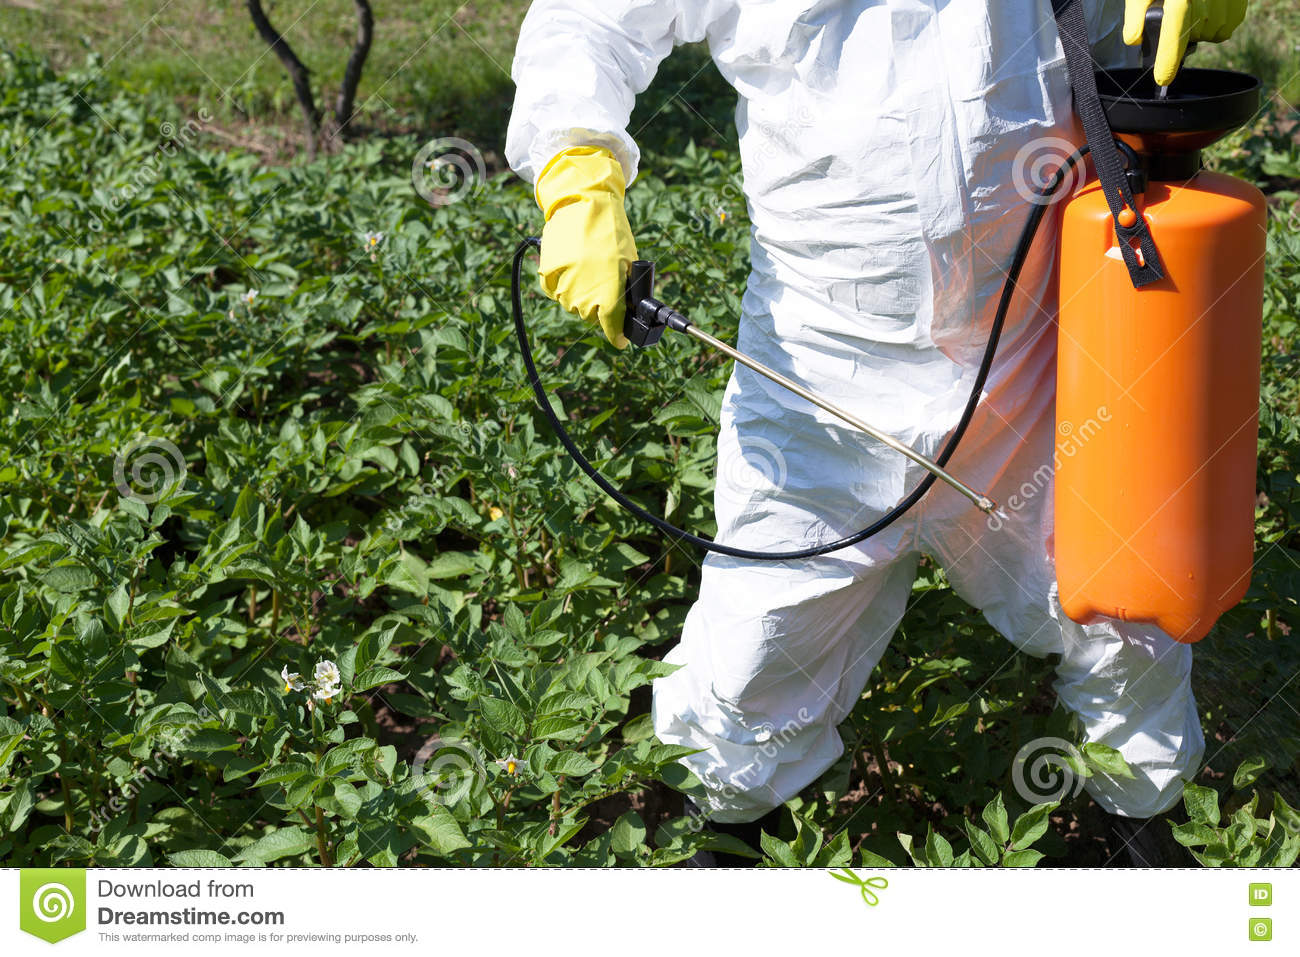 Man spraying toxic pesticides or insecticides in vegetable Organic pesticide for vegetable garden